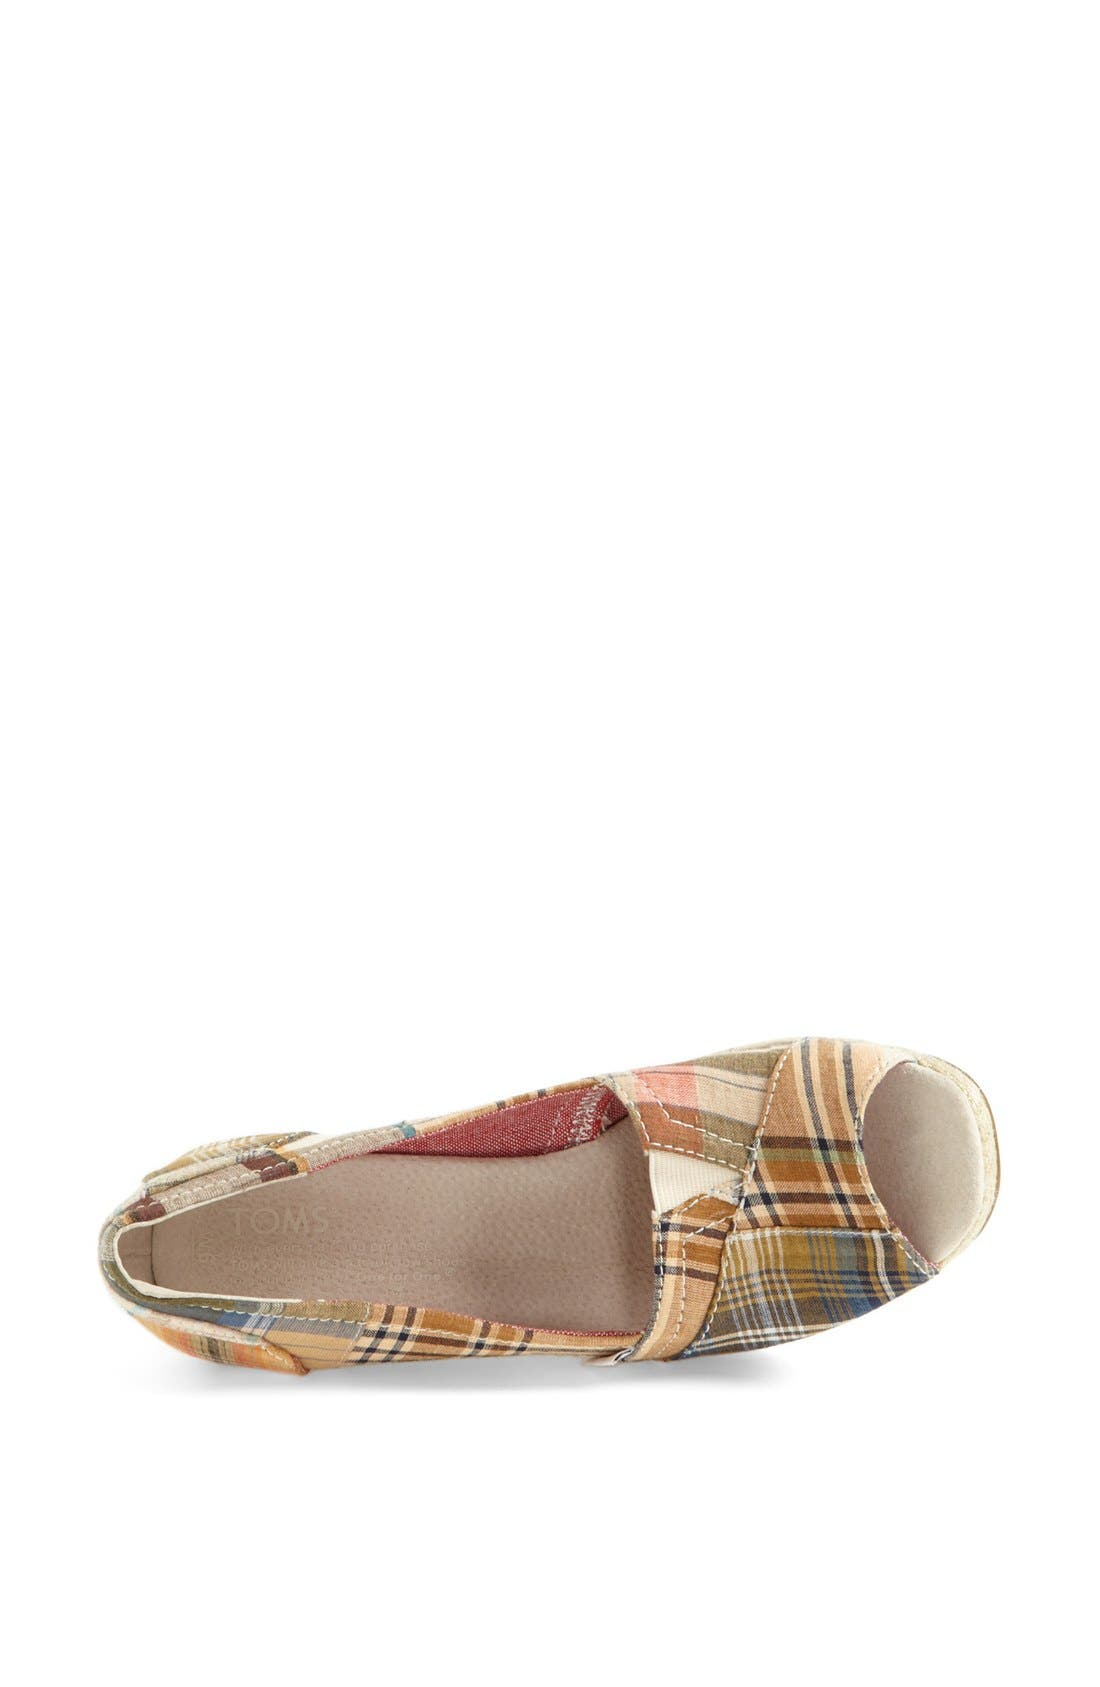 Alternate Image 3  - TOMS 'Madras Plaid' Wedge (Women)